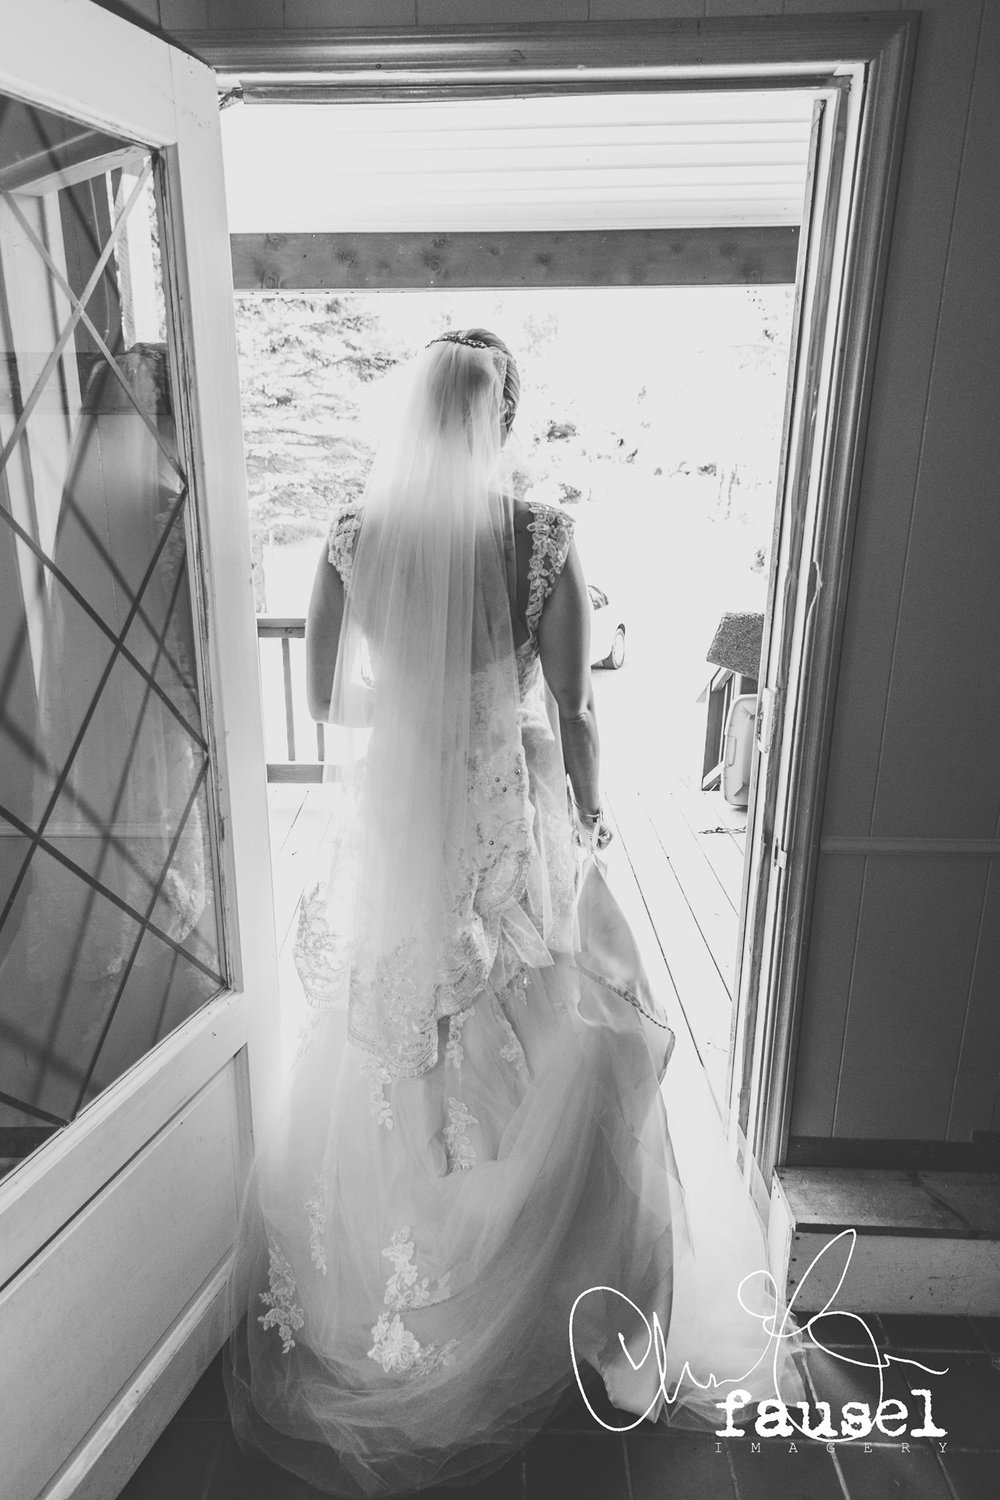 From the back the veil hit perfectly to her dresses trumpet bottom tier!